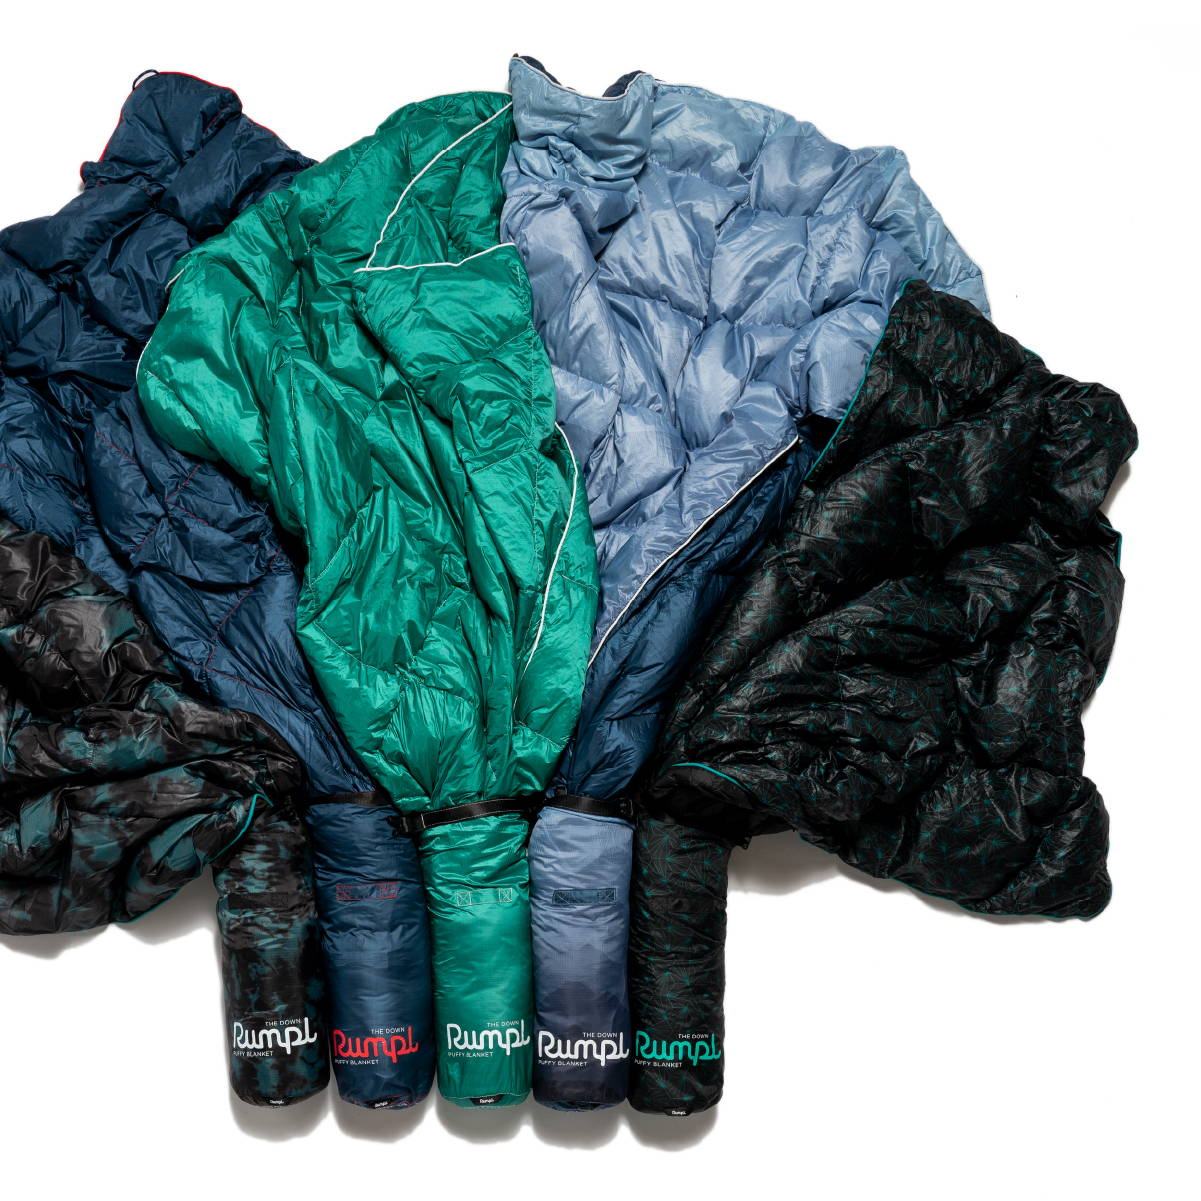 Blue Green Purple and Black sleeping bag Rumpl blankets laying in a pile